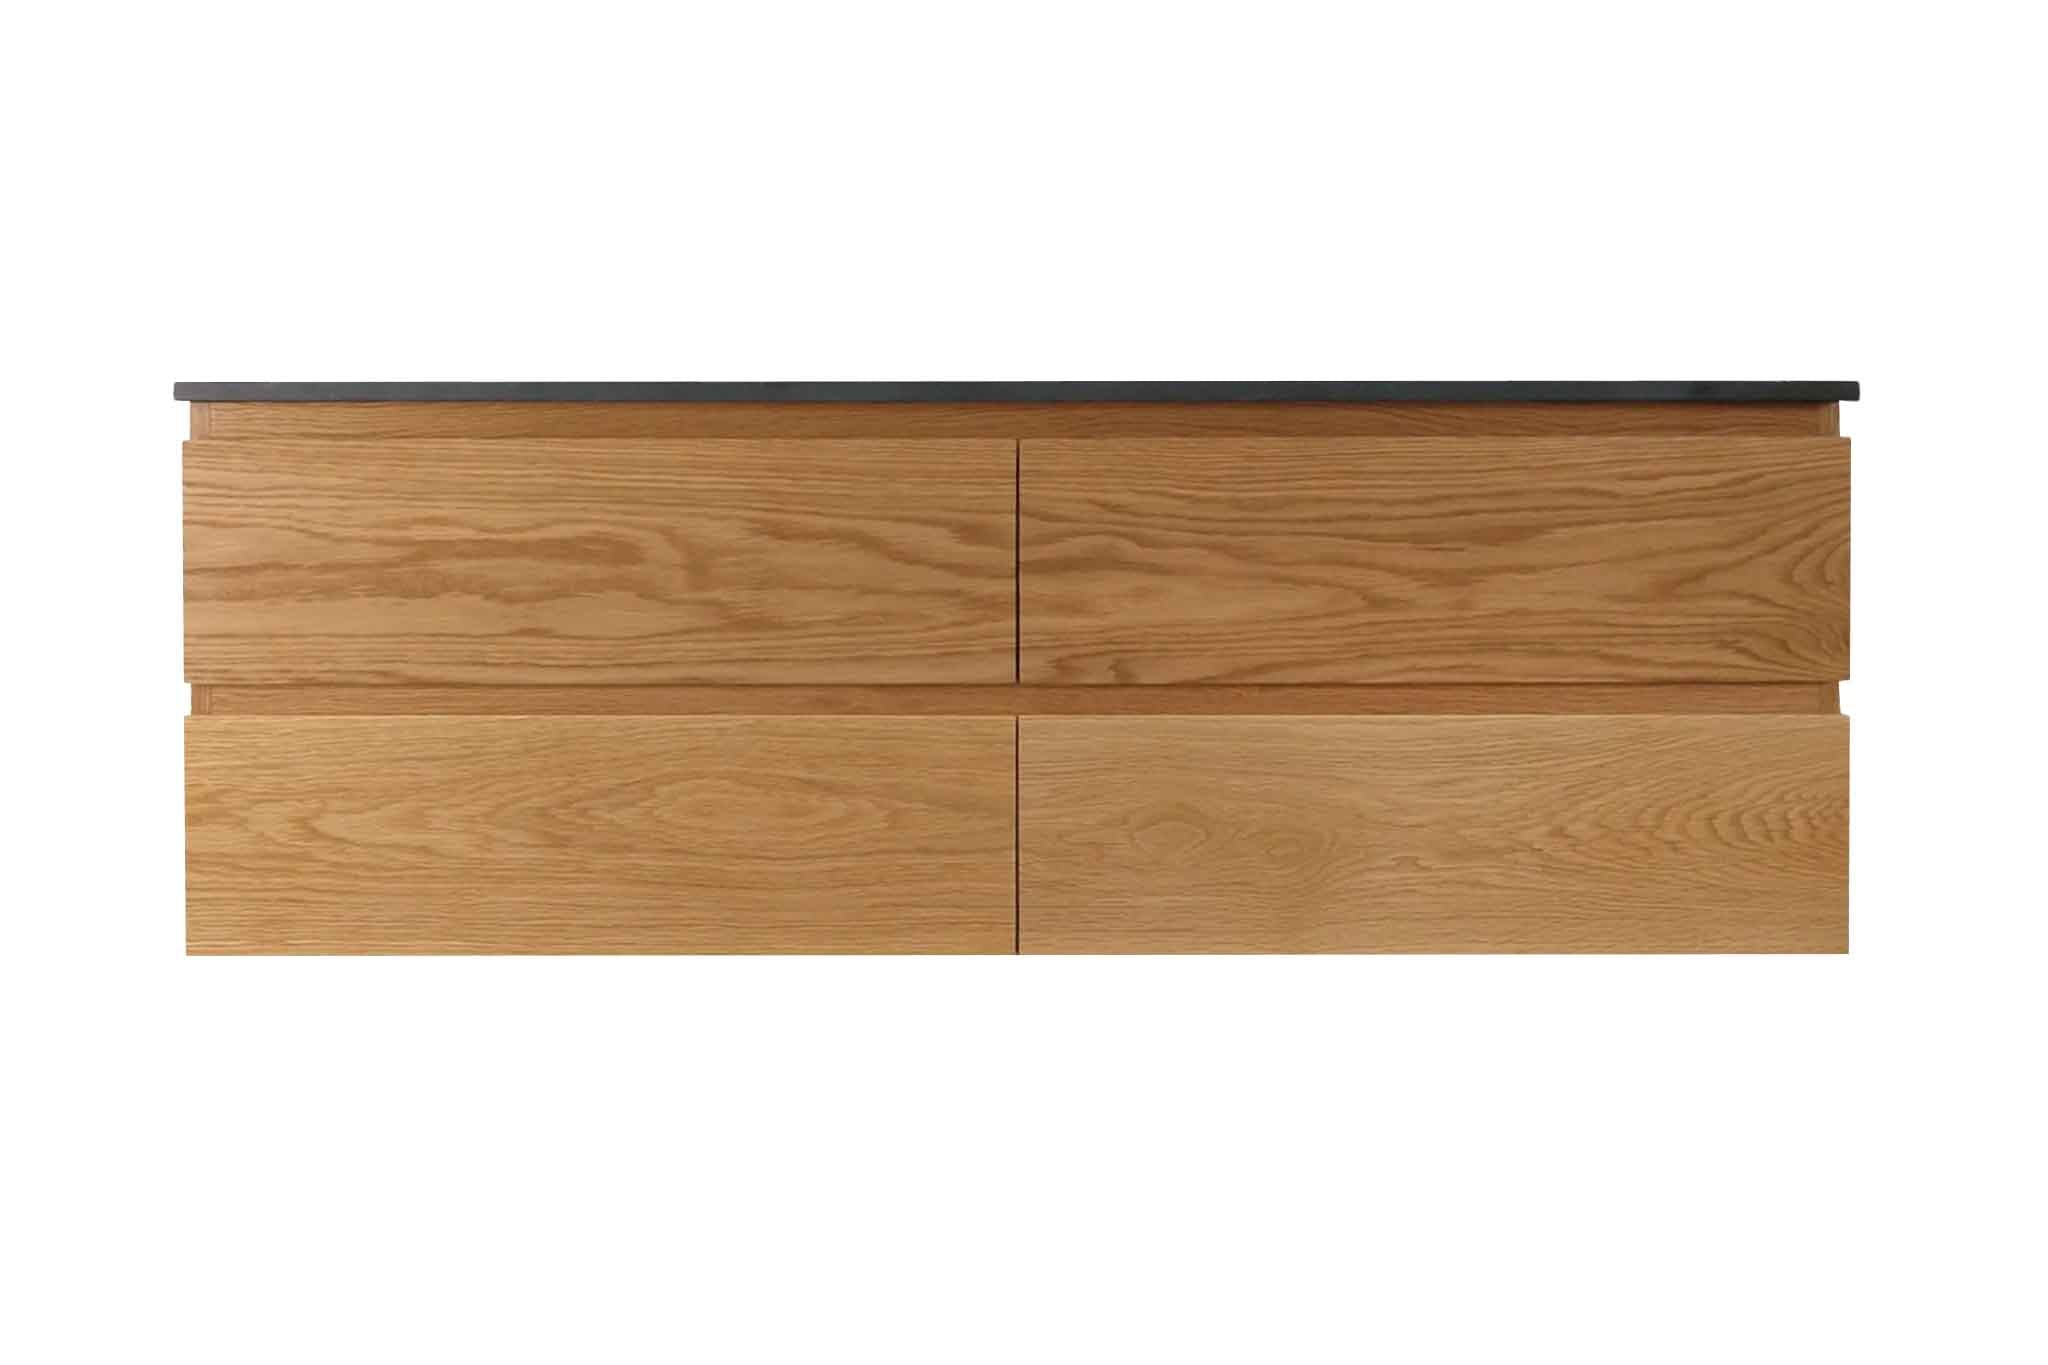 Wall Hung Timber Vanity custom made from sustainably sourced American White Oak by One Tree Studio.